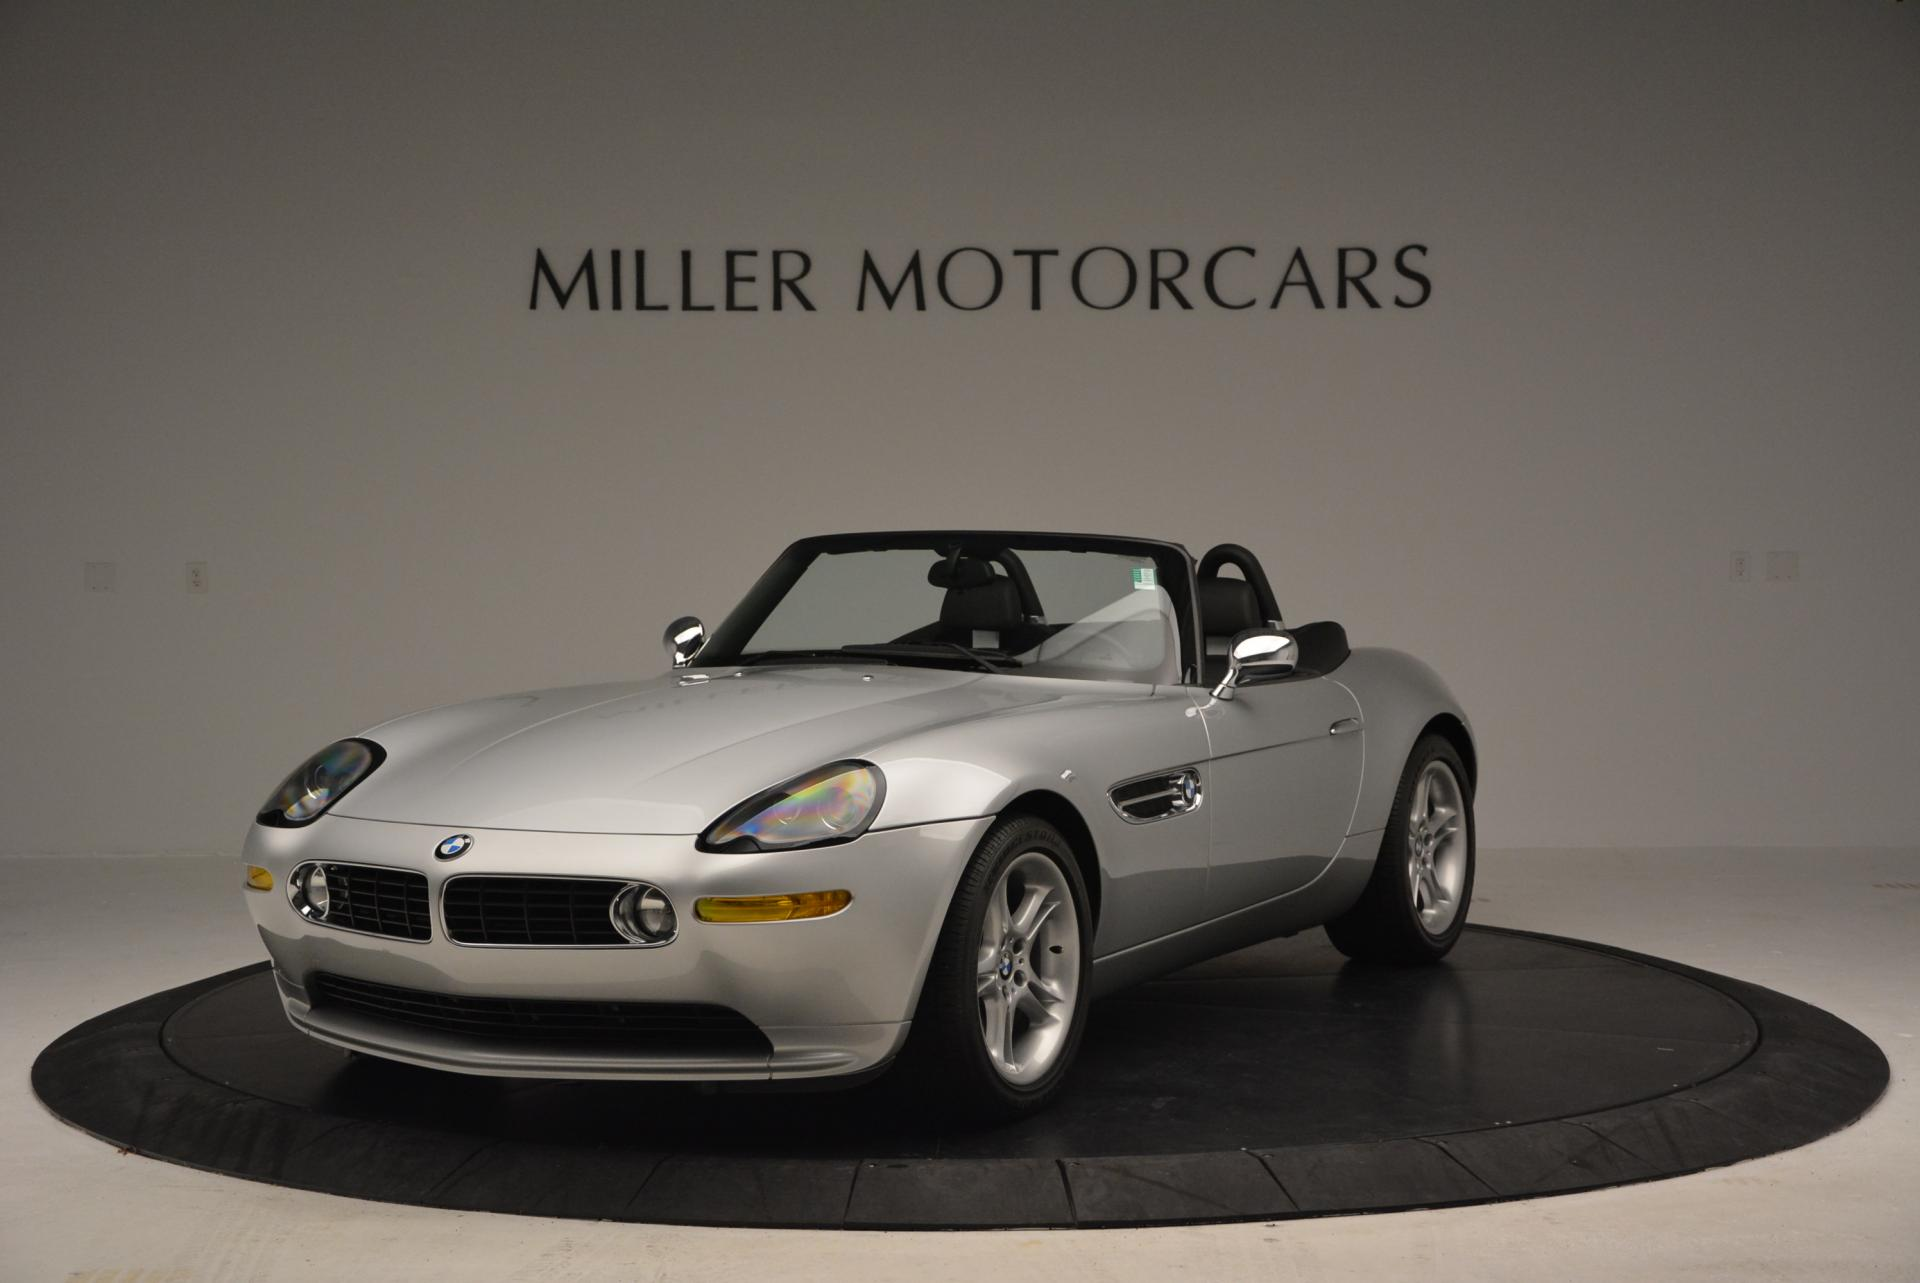 Used 2000 BMW Z8 for sale $177,900 at Bentley Greenwich in Greenwich CT 06830 1